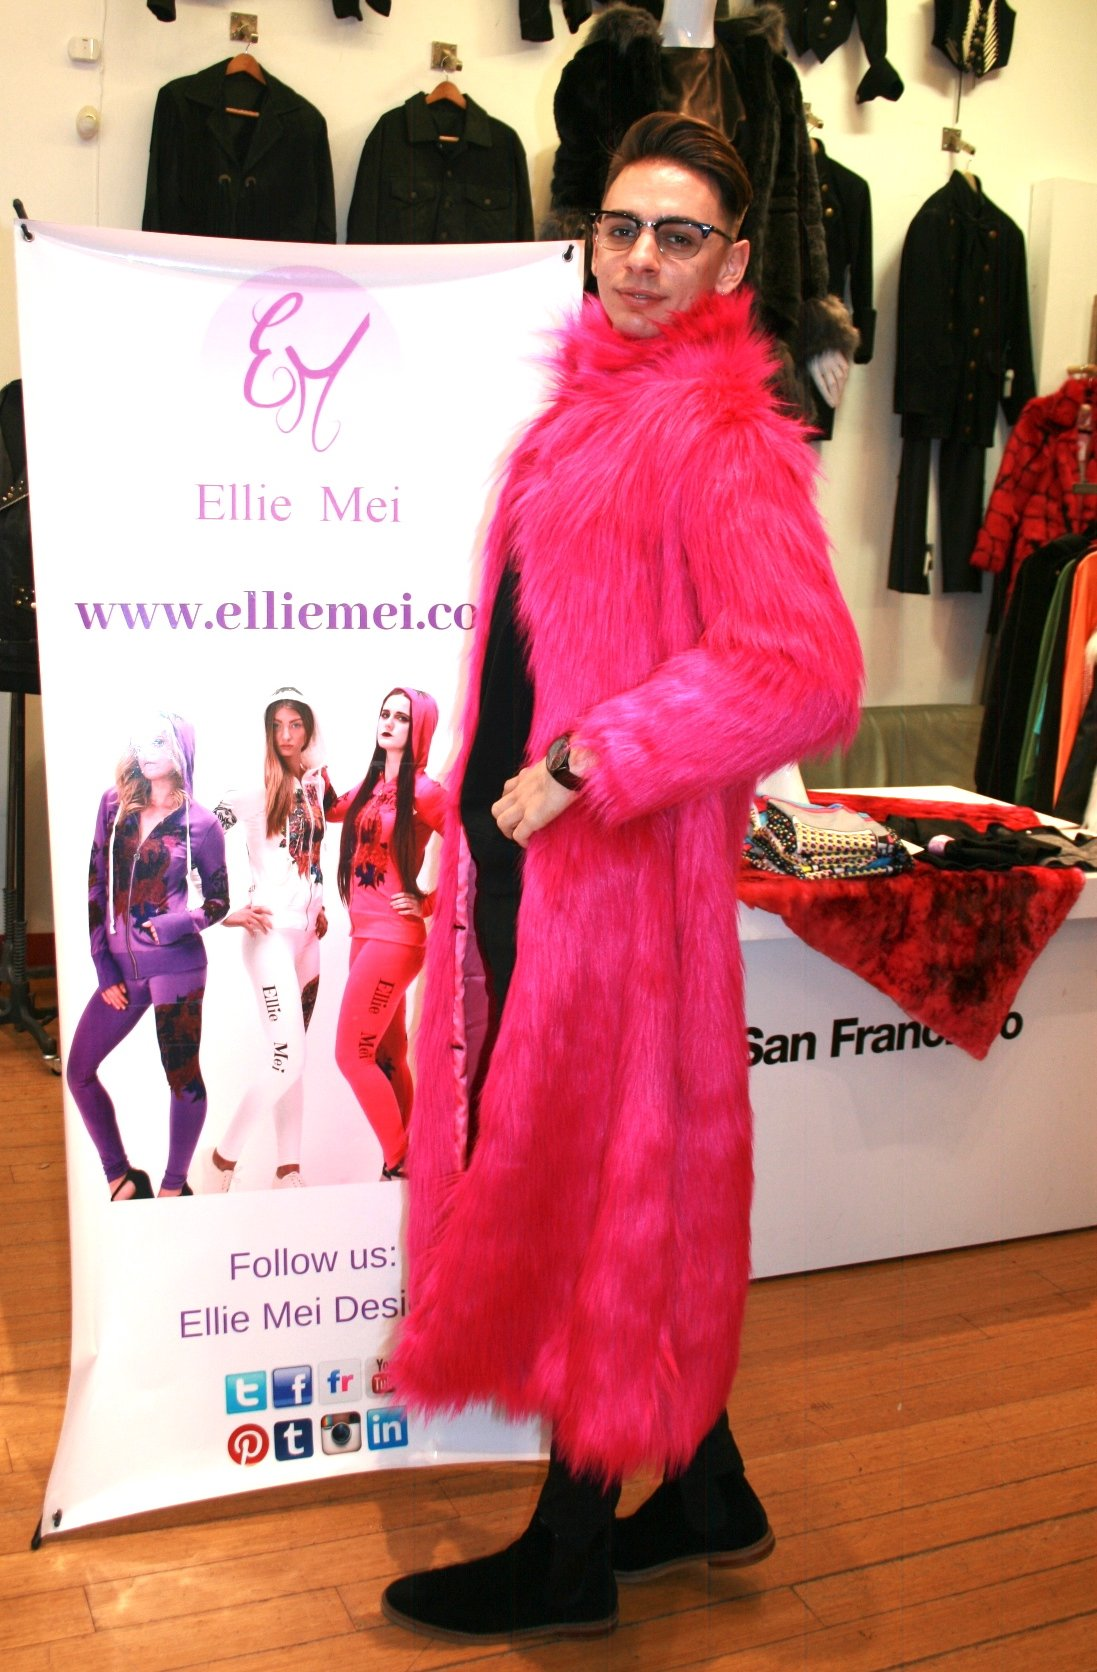 unisex faux fur coat hot pink unisex faux fur coat runway coat fashion show faux fur coat  hot pink faux fur jacket wholesale faux fur coat winter warm coat long body faux fur coat  shopping the runway NYFW MLFW LAFW SFFW PFW LDFW JPFW USA brand designer store designer's shop